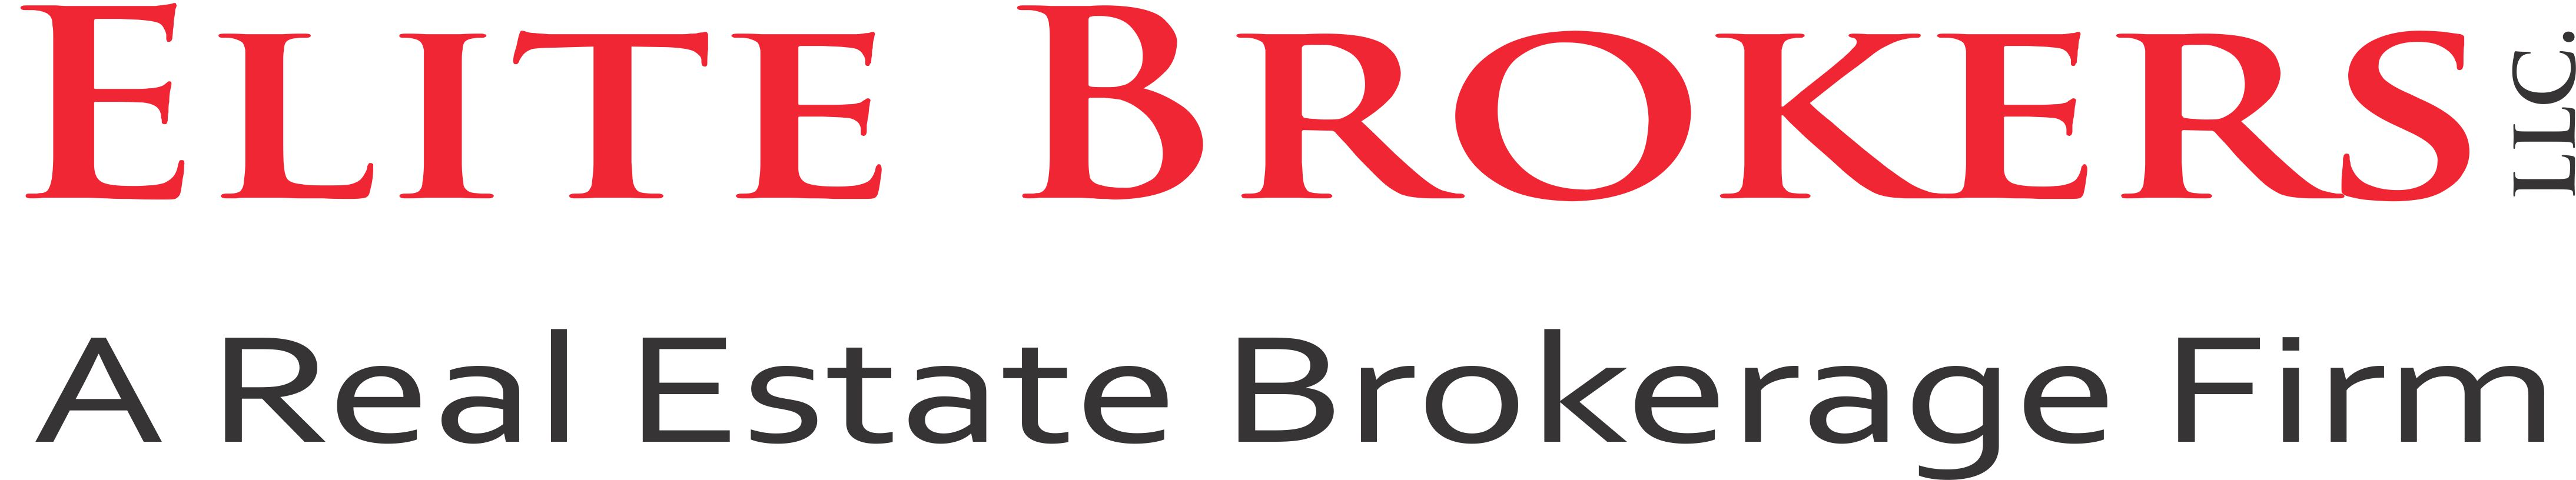 Greg De La Rue - Broker/Owner